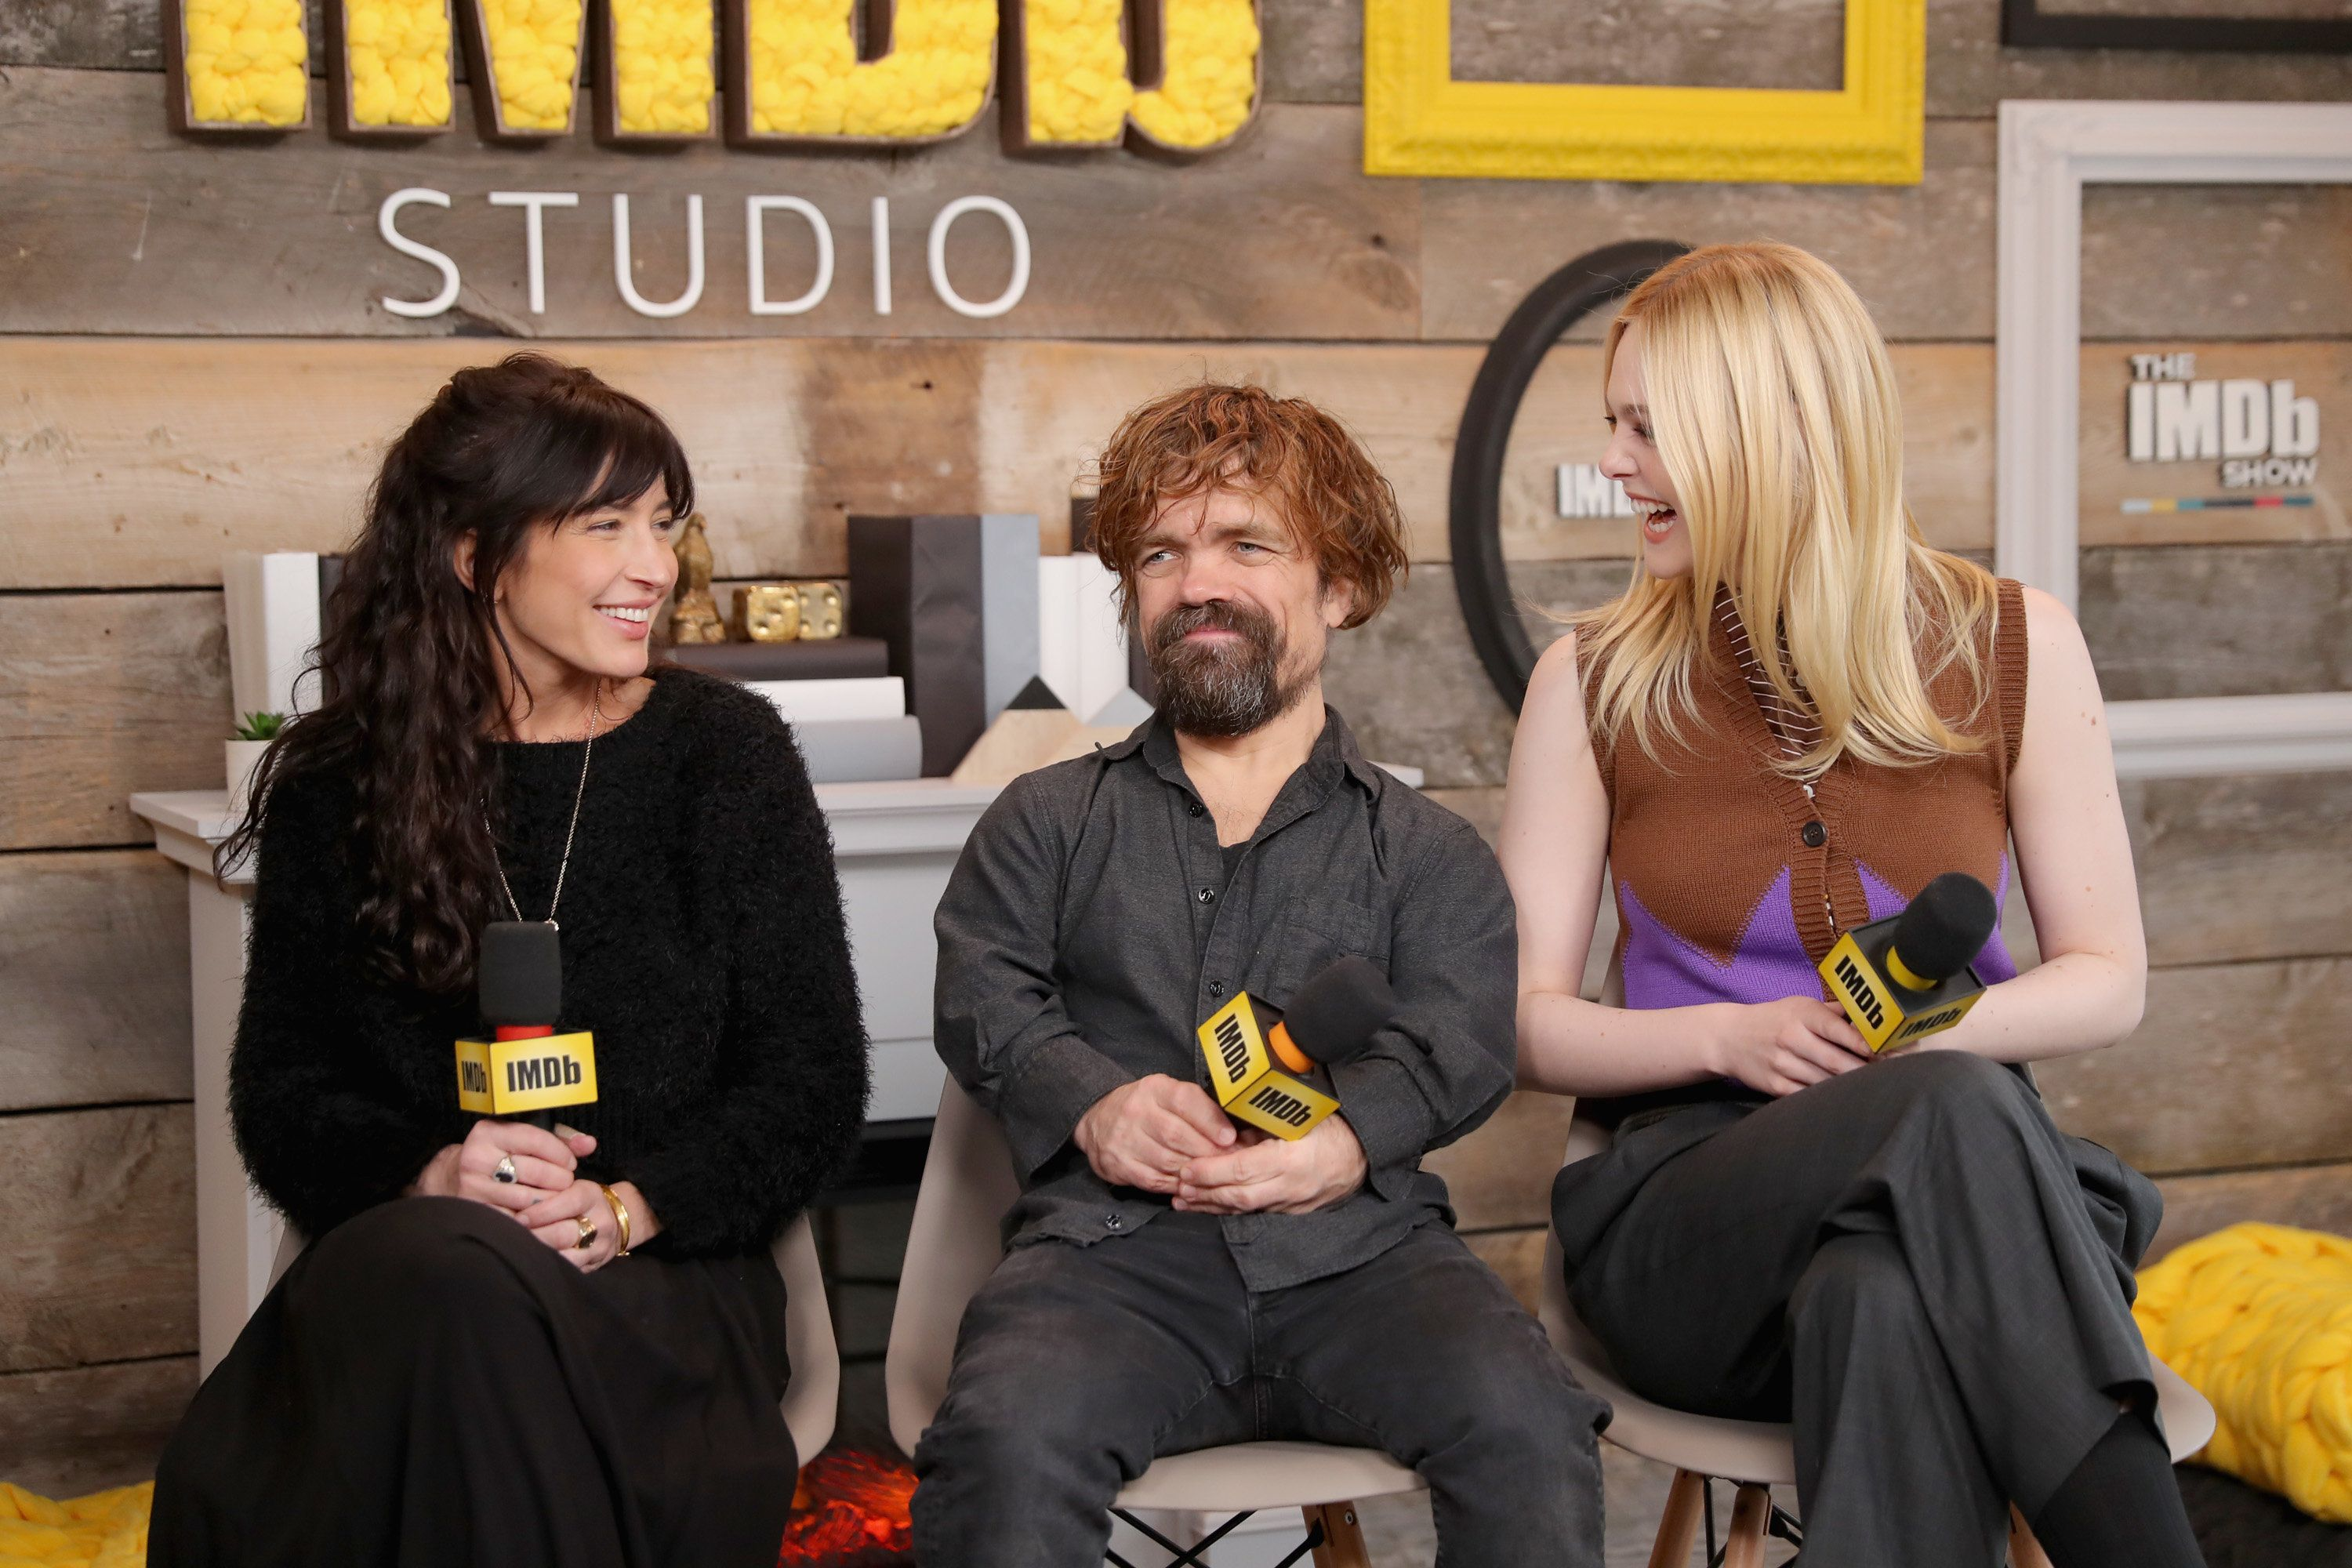 PARK CITY, UT - JANUARY 21:  Director Reed Morano, actors Peter Dinklage and Elle Fanning of  'I Think We're Alone Now' attend The IMDb Studio and The IMDb Show on Location at The Sundance Film Festival on January 21, 2018 in Park City, Utah.  (Photo by Rich Polk/Getty Images for IMDb)